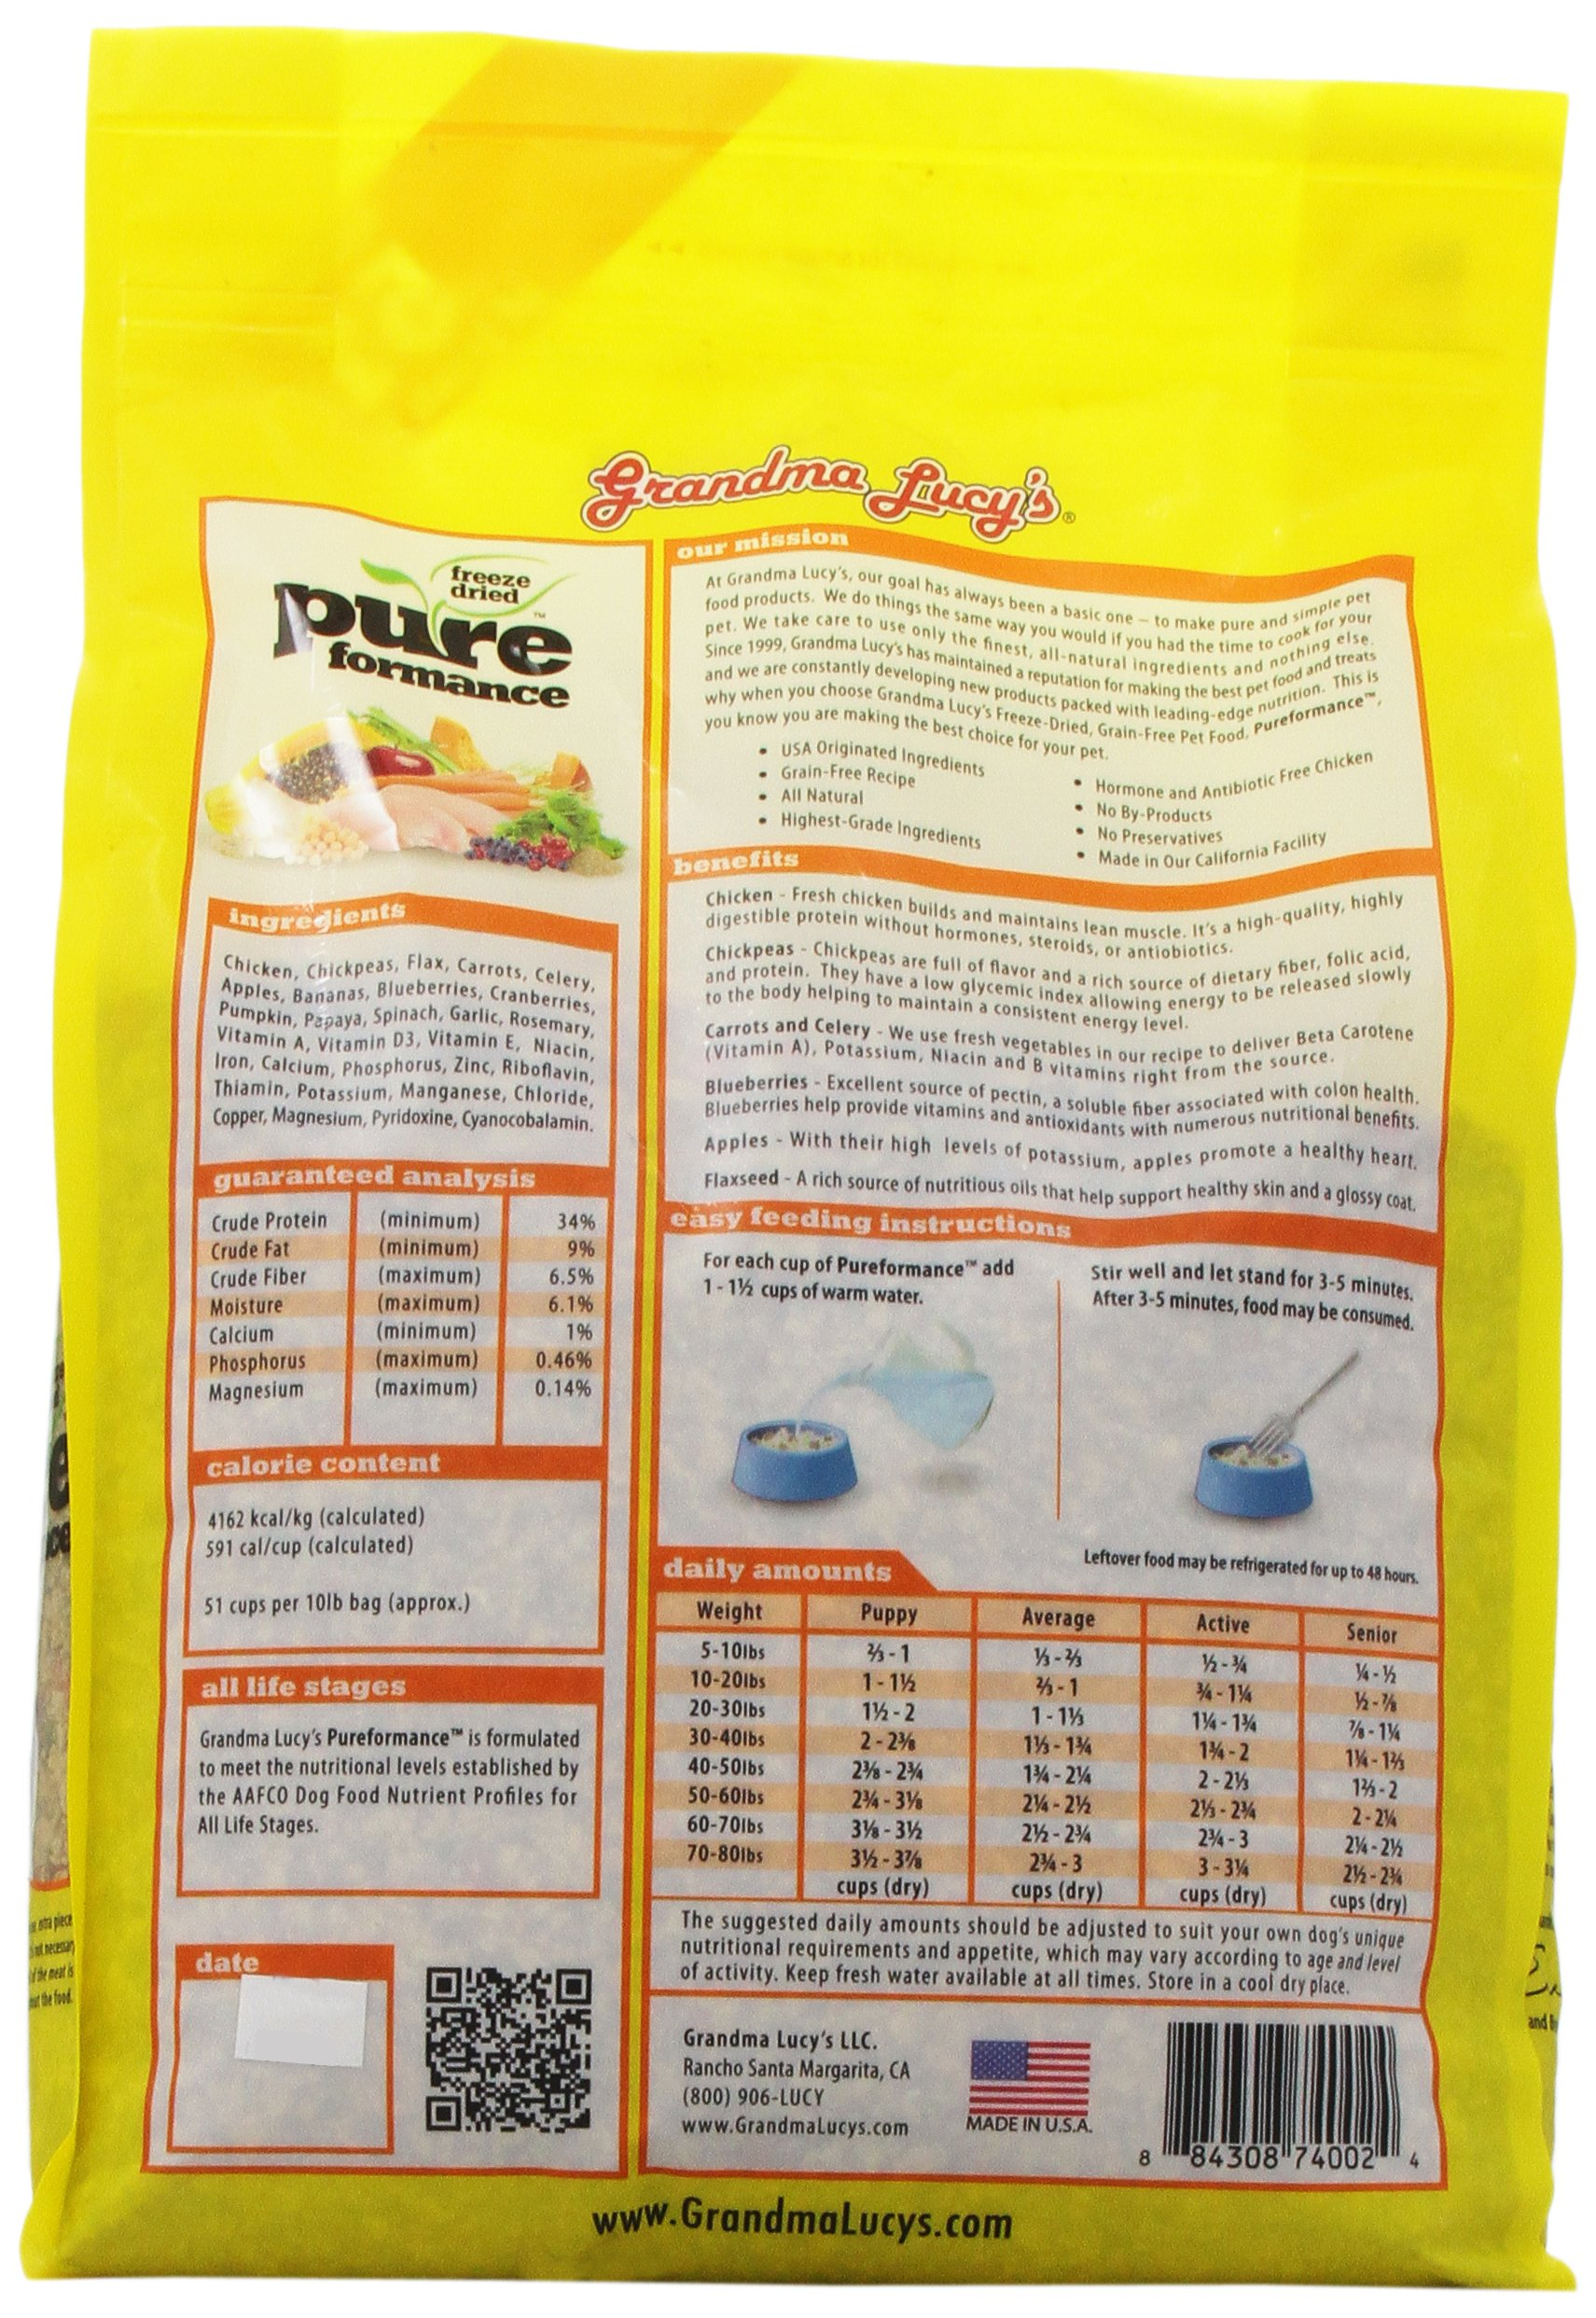 GRANDMA LUCY'S 844212 Pureformance Grain Free Chicken Food for Dogs, 10-Pound by Grandma Lucy's (Image #5)